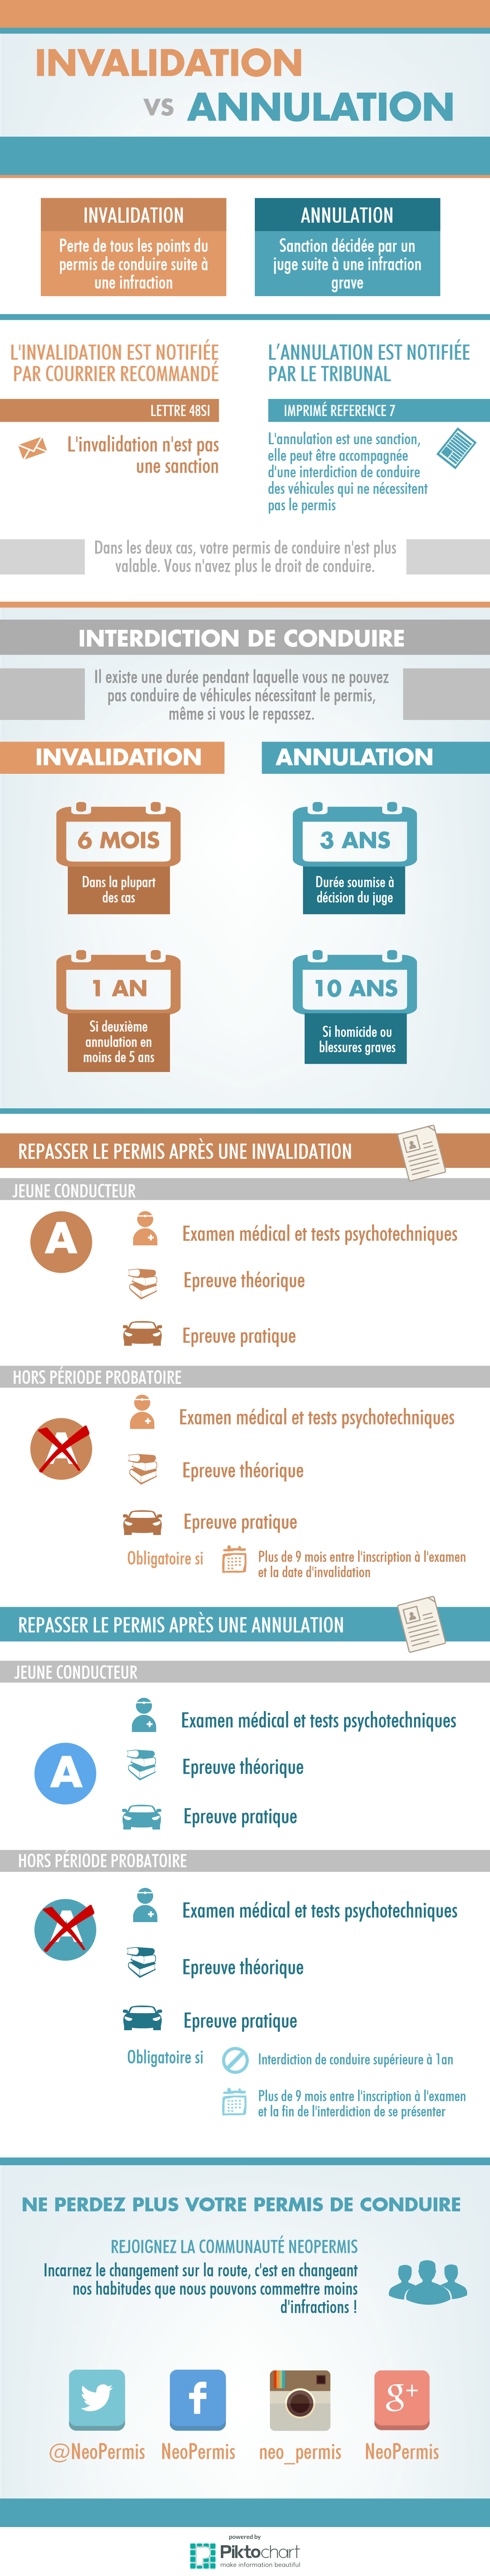 annulation-vs-invalidation